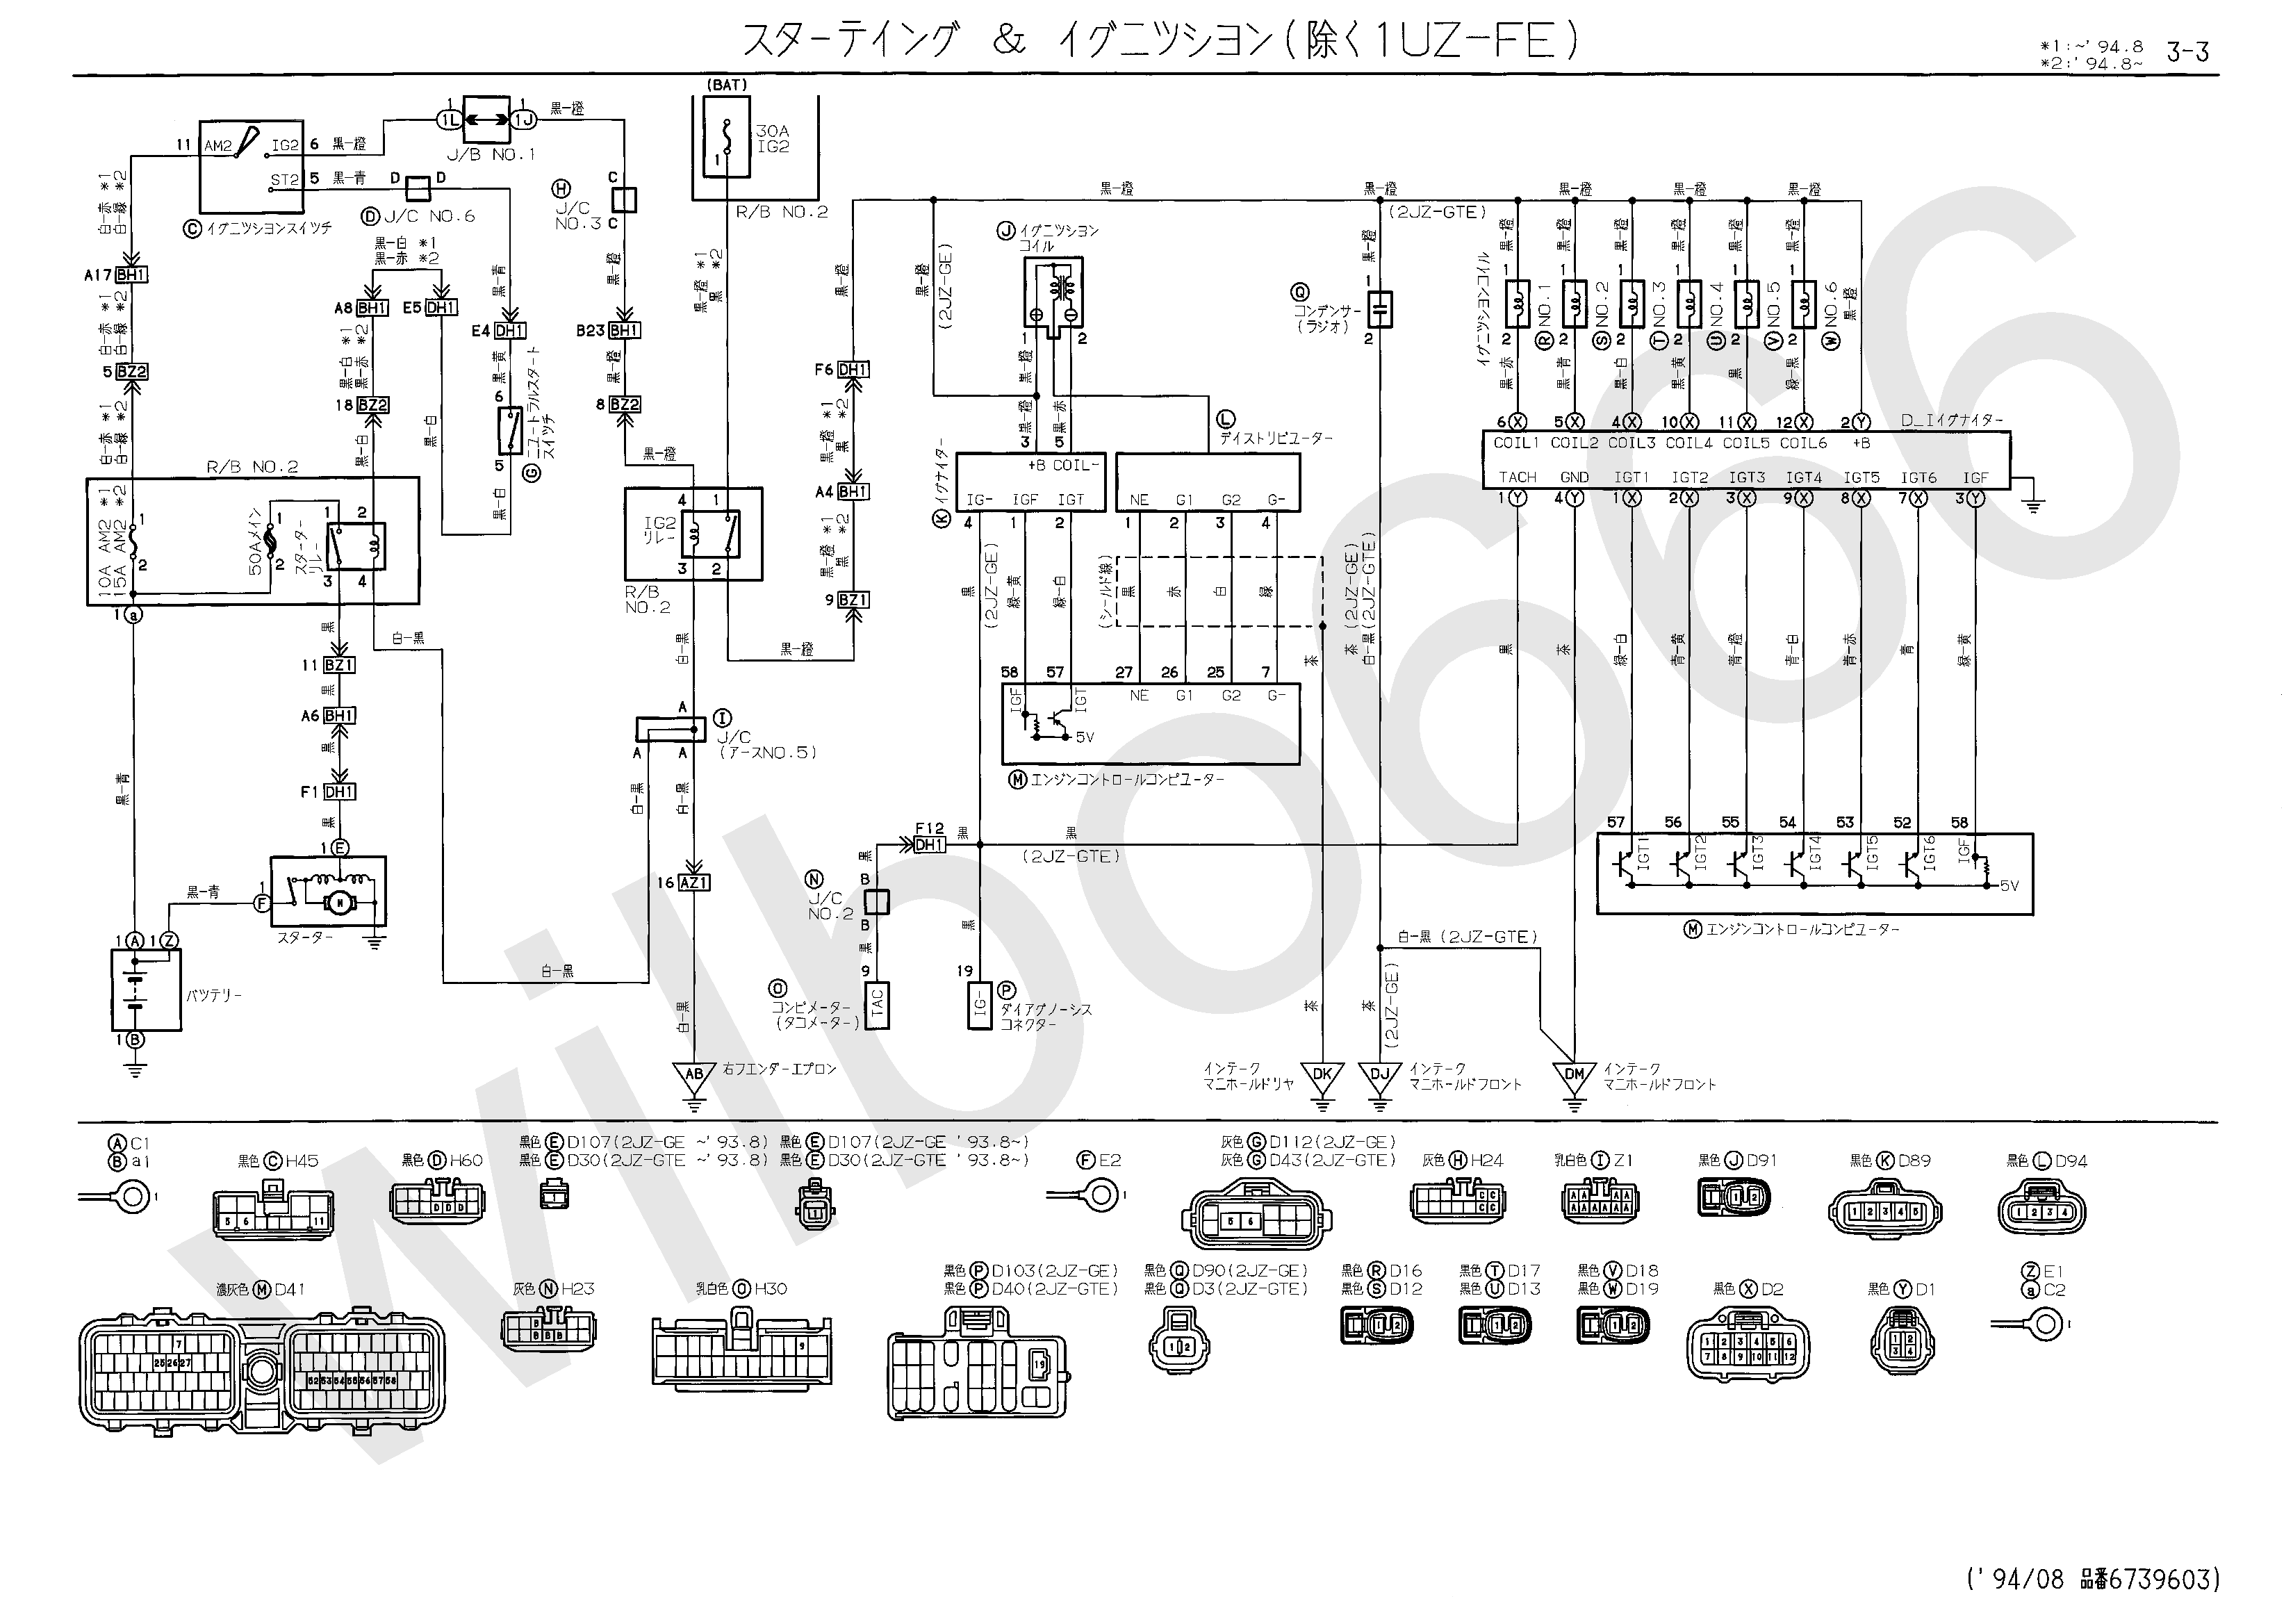 JZS14%23%2C UZS14%23 Electrical Wiring Diagram 6739604 3 3?resize\\\\\\\\\\\\\\\\\\\\\\\\\\\\\\\\\\\\\\\\\\\\\\\\\\\\\\\\\\\\\\\\\\\\\\\\\\\\\\\\\\\\\\\\\\\\\\\\\\\\\\\\\\\\\\\\\\\\\\\\\\\\\\\\\\\\\\\\\\\\\\\\\\\\\\\\\\\\\\\\\\\\\\\\\\\\\\\\\\\\\\\\\\\\\\\\\\\\\\\\\\\\\\\\\\\\\\\\\\\\\\\\\\\\\\\\\\\\\\\\\\\\\\\\\\\\\\\\\\\\\\\\\\\\\\\\\\\\\\\\\\\\\\\\\\\\\\\\\\\\\\\\\\\\\\\\\\\\\\\\\\\\\\\\\\\\\\\\\\\\\\\\\\\\\\\\\\\\\\\\\\\\\\\\\\\\\\\\\\\\\\\\\\\\\\\\\\\\\\\\\\\\\\\\\\\\\\\\\\\\\\\\\\\\\\\\\\\\\\\\\\\\\\\\\\\\\\\\\\\\\\\\\\\\\\\\\\\\\\\\\\\\\\\\\\\\\\\\\\\\\\\\\\\\\\\\\\\\\\\\\\\\\\\\\\\\\\\\\\\\\\\\\\\\\\\\\\\\\\\\\\\\\\\\\\\\\\\\\\\\\\\\\\\\\\\\\\\\\\\\\\\\\\\\\\\\\\\\\\\\\\\\\\\\\\\\\\\\\\\\\\\\\\\\\\\\\\\\\\\\\\\\\\\\\\\\\\\\\\\\\\\\\\\\\\\\\\\\\\\\\\\\\\\\\\\\\\\\\\\\\\\\\\\\\\\\\\\\\\\\\\\\\\\\\\\\\\\\\\\\\\\\\\\\\\\\\\\\\\\\\\\\\\\\\\\\\\\\\\\\\\\\\\\\\\\\\\\\\\\\\\\\\\\\\\\\\\\\\\\\\\\\\\\\\\\\\\\\\\\\\\\\\\\\\\\\\\\\\\\\\\\\\\\\\\\\\\\\\\\=665%2C471 7mgte wiring harness diagram ouku double din wiring diagram \u2022 free  at suagrazia.org